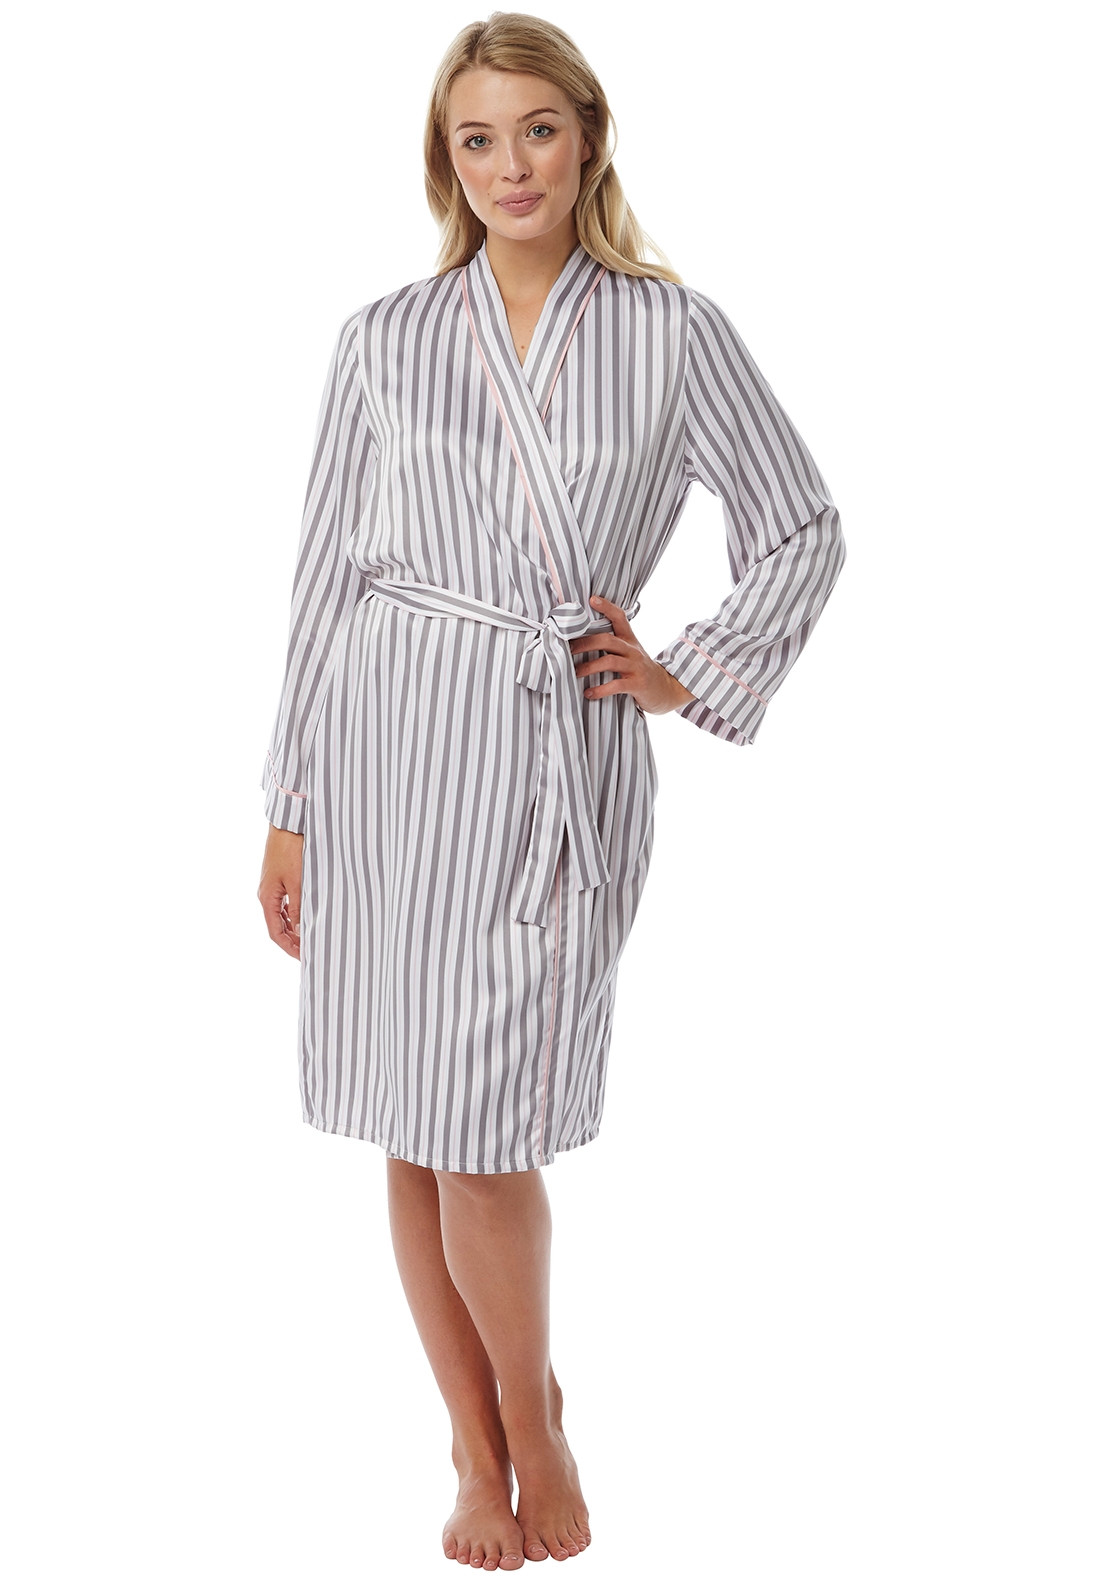 reliable reputation running shoes search for clearance Indigo Sky Stripe Print Satin Dressing Gown, Grey